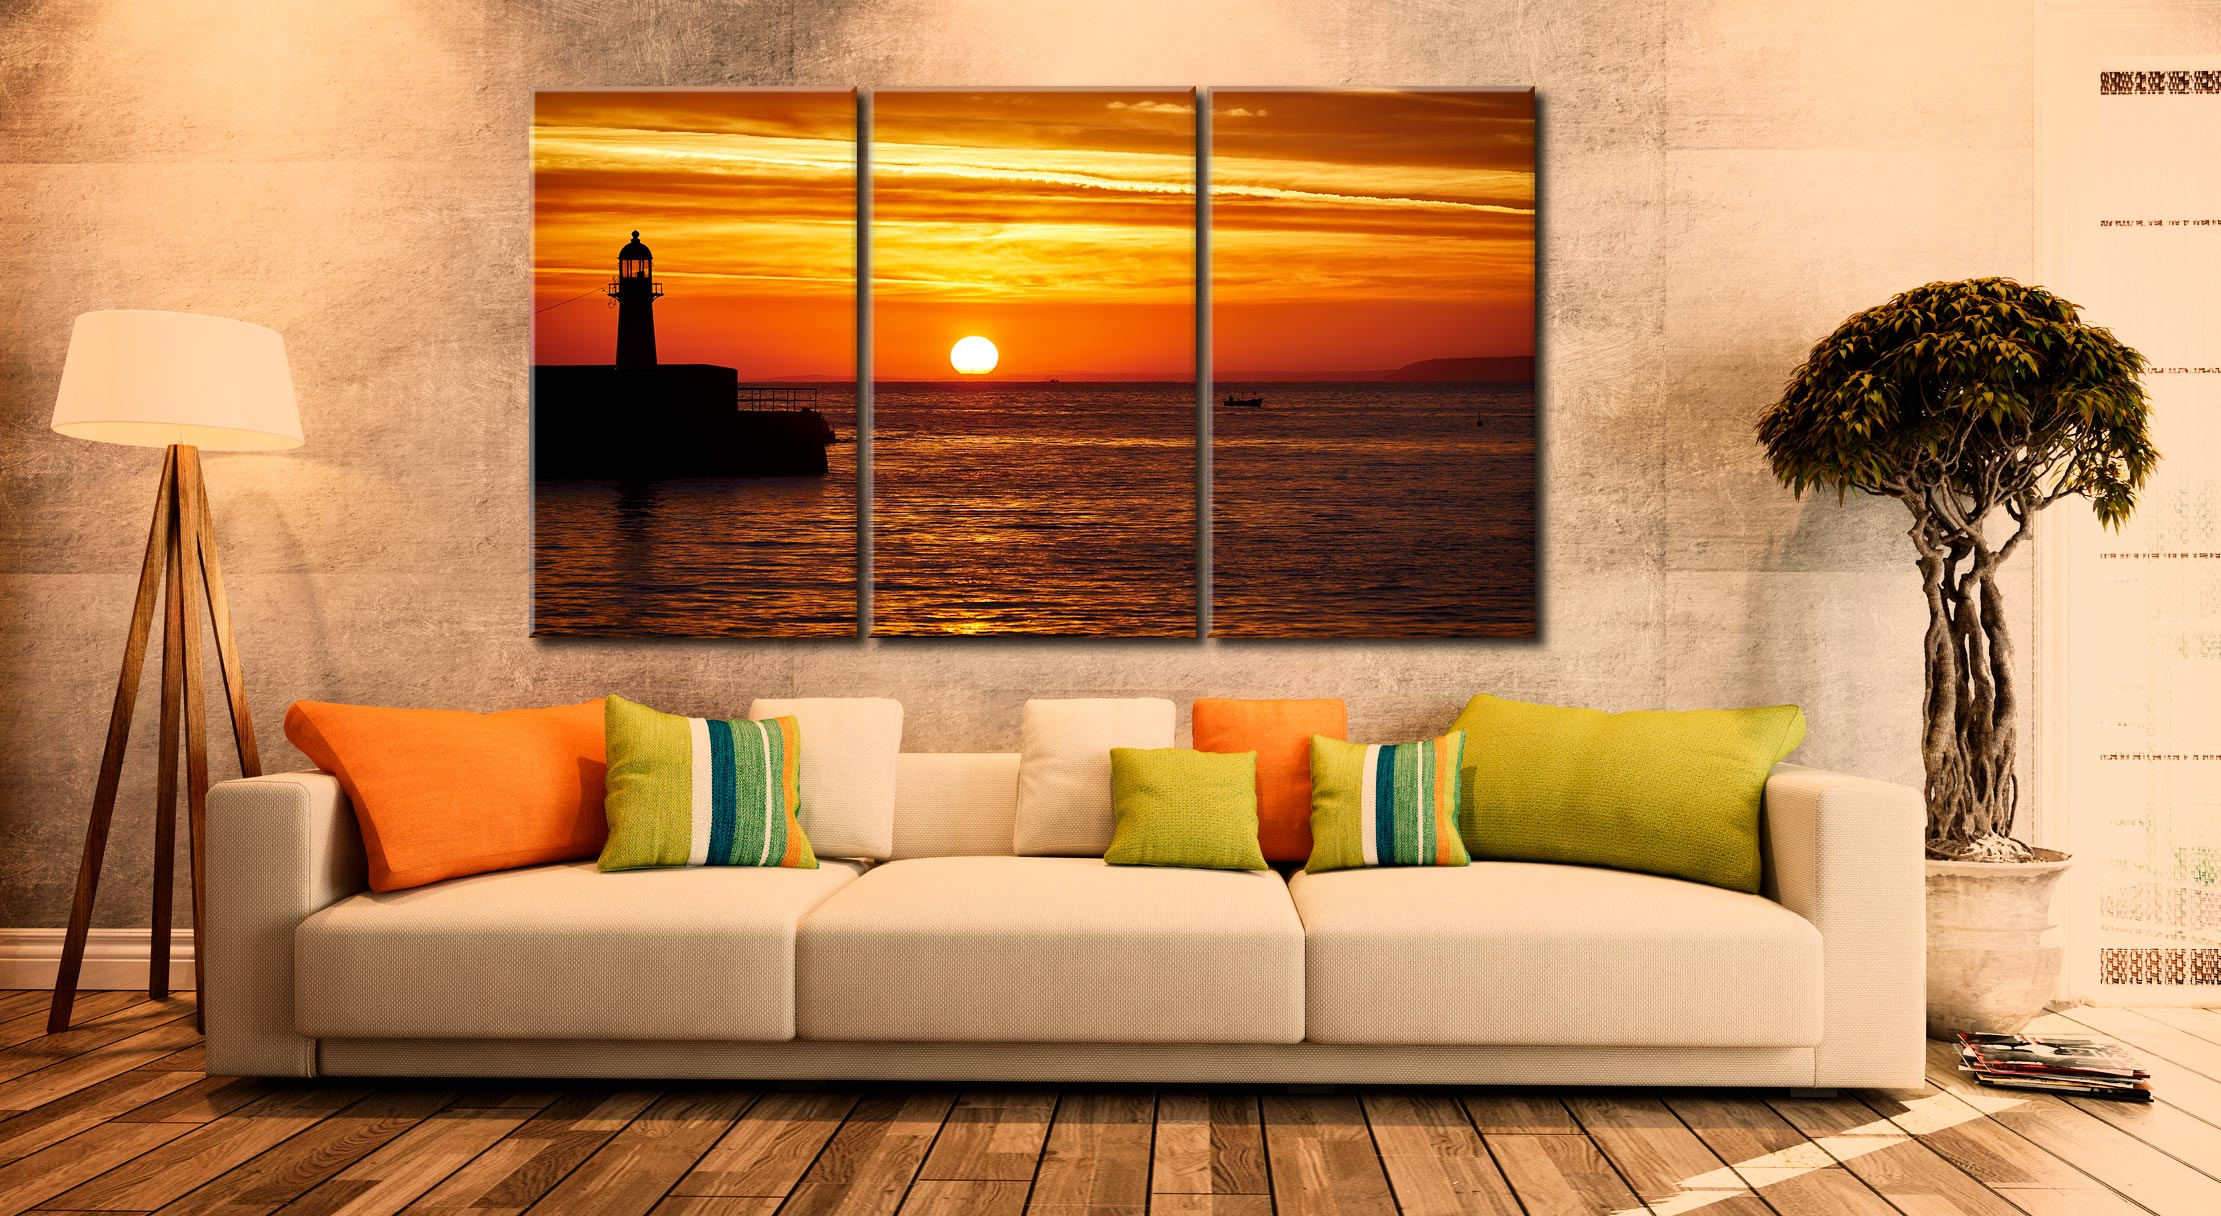 St Ives Harbour Sunrise - 3 Panel Canvas on Wall